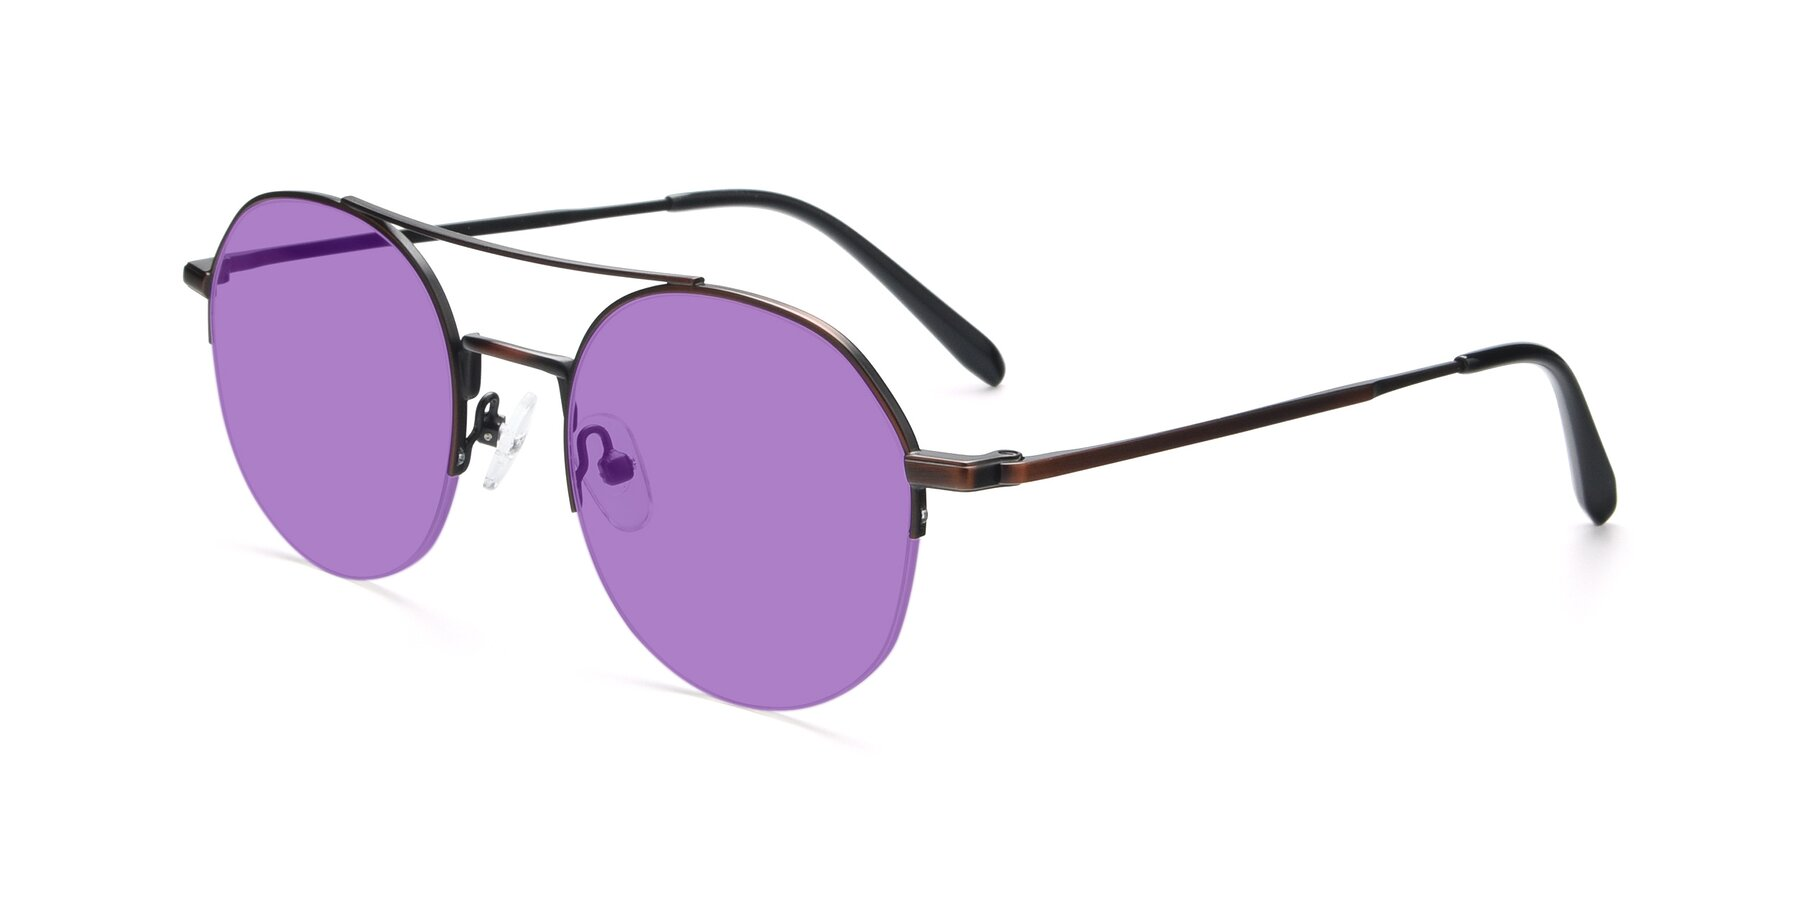 Angle of 9521 in Brown with Medium Purple Tinted Lenses